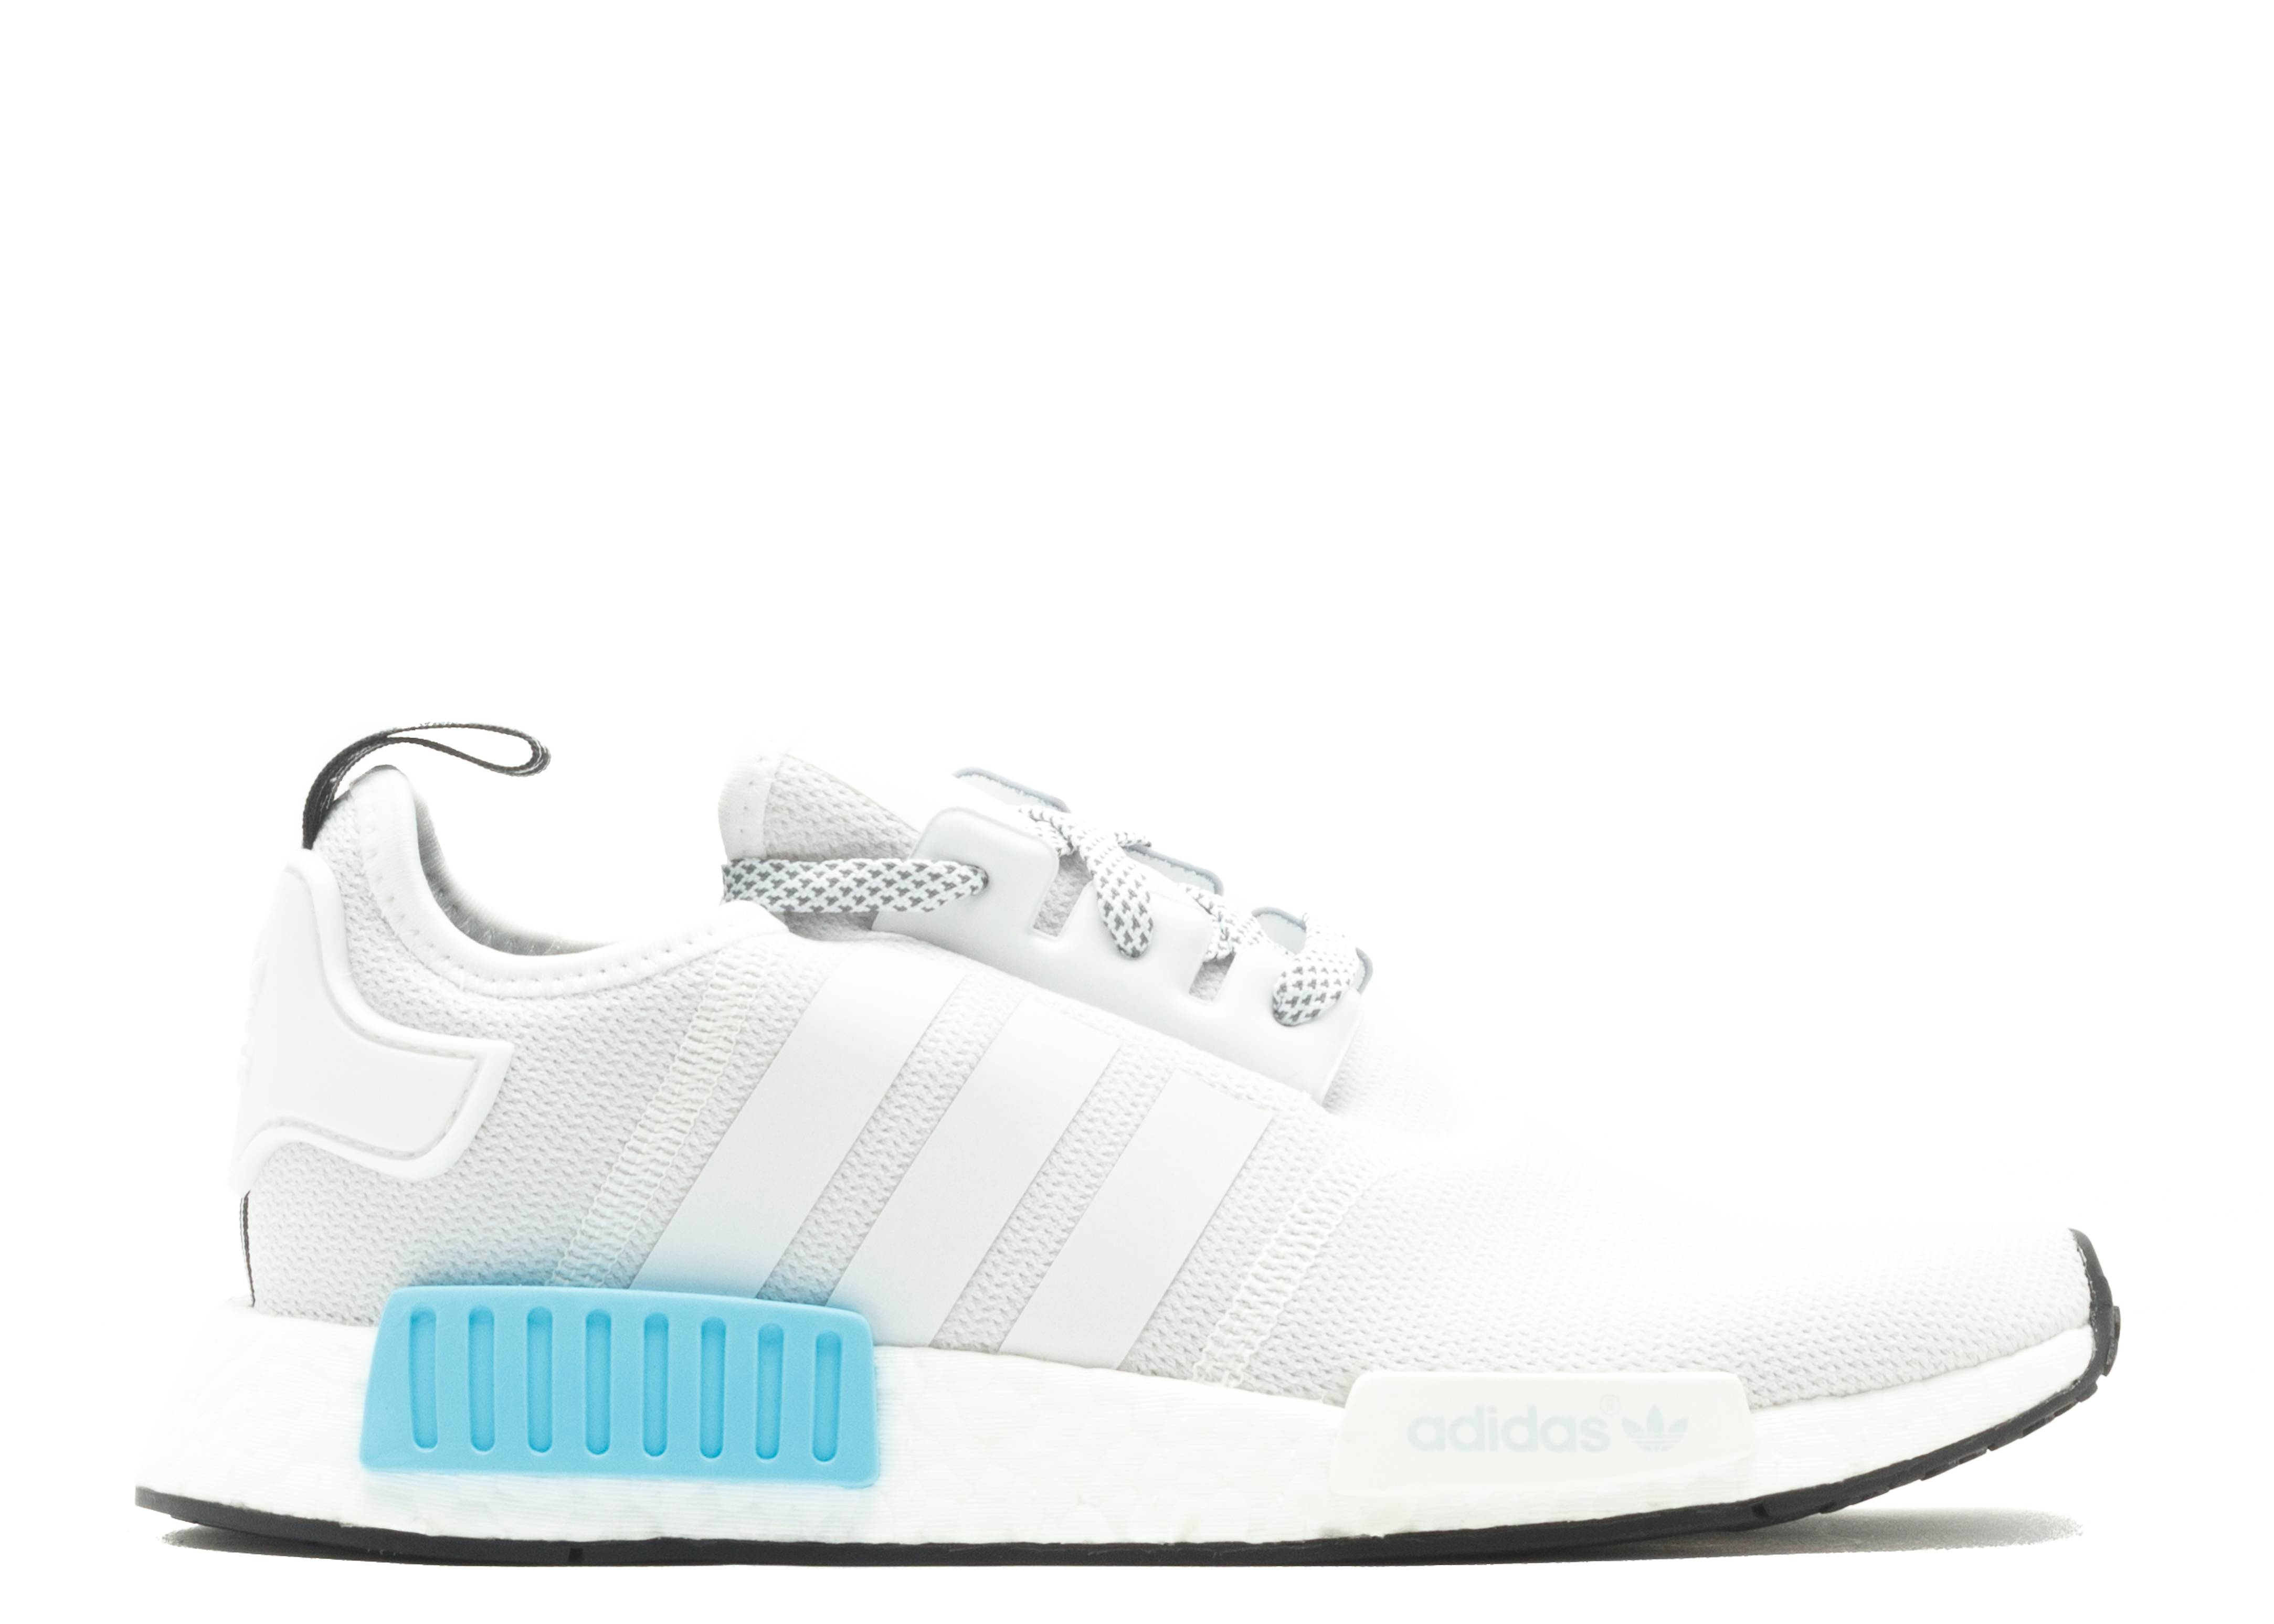 new arrival 268d3 ac749 Nmd R1 J (gs)